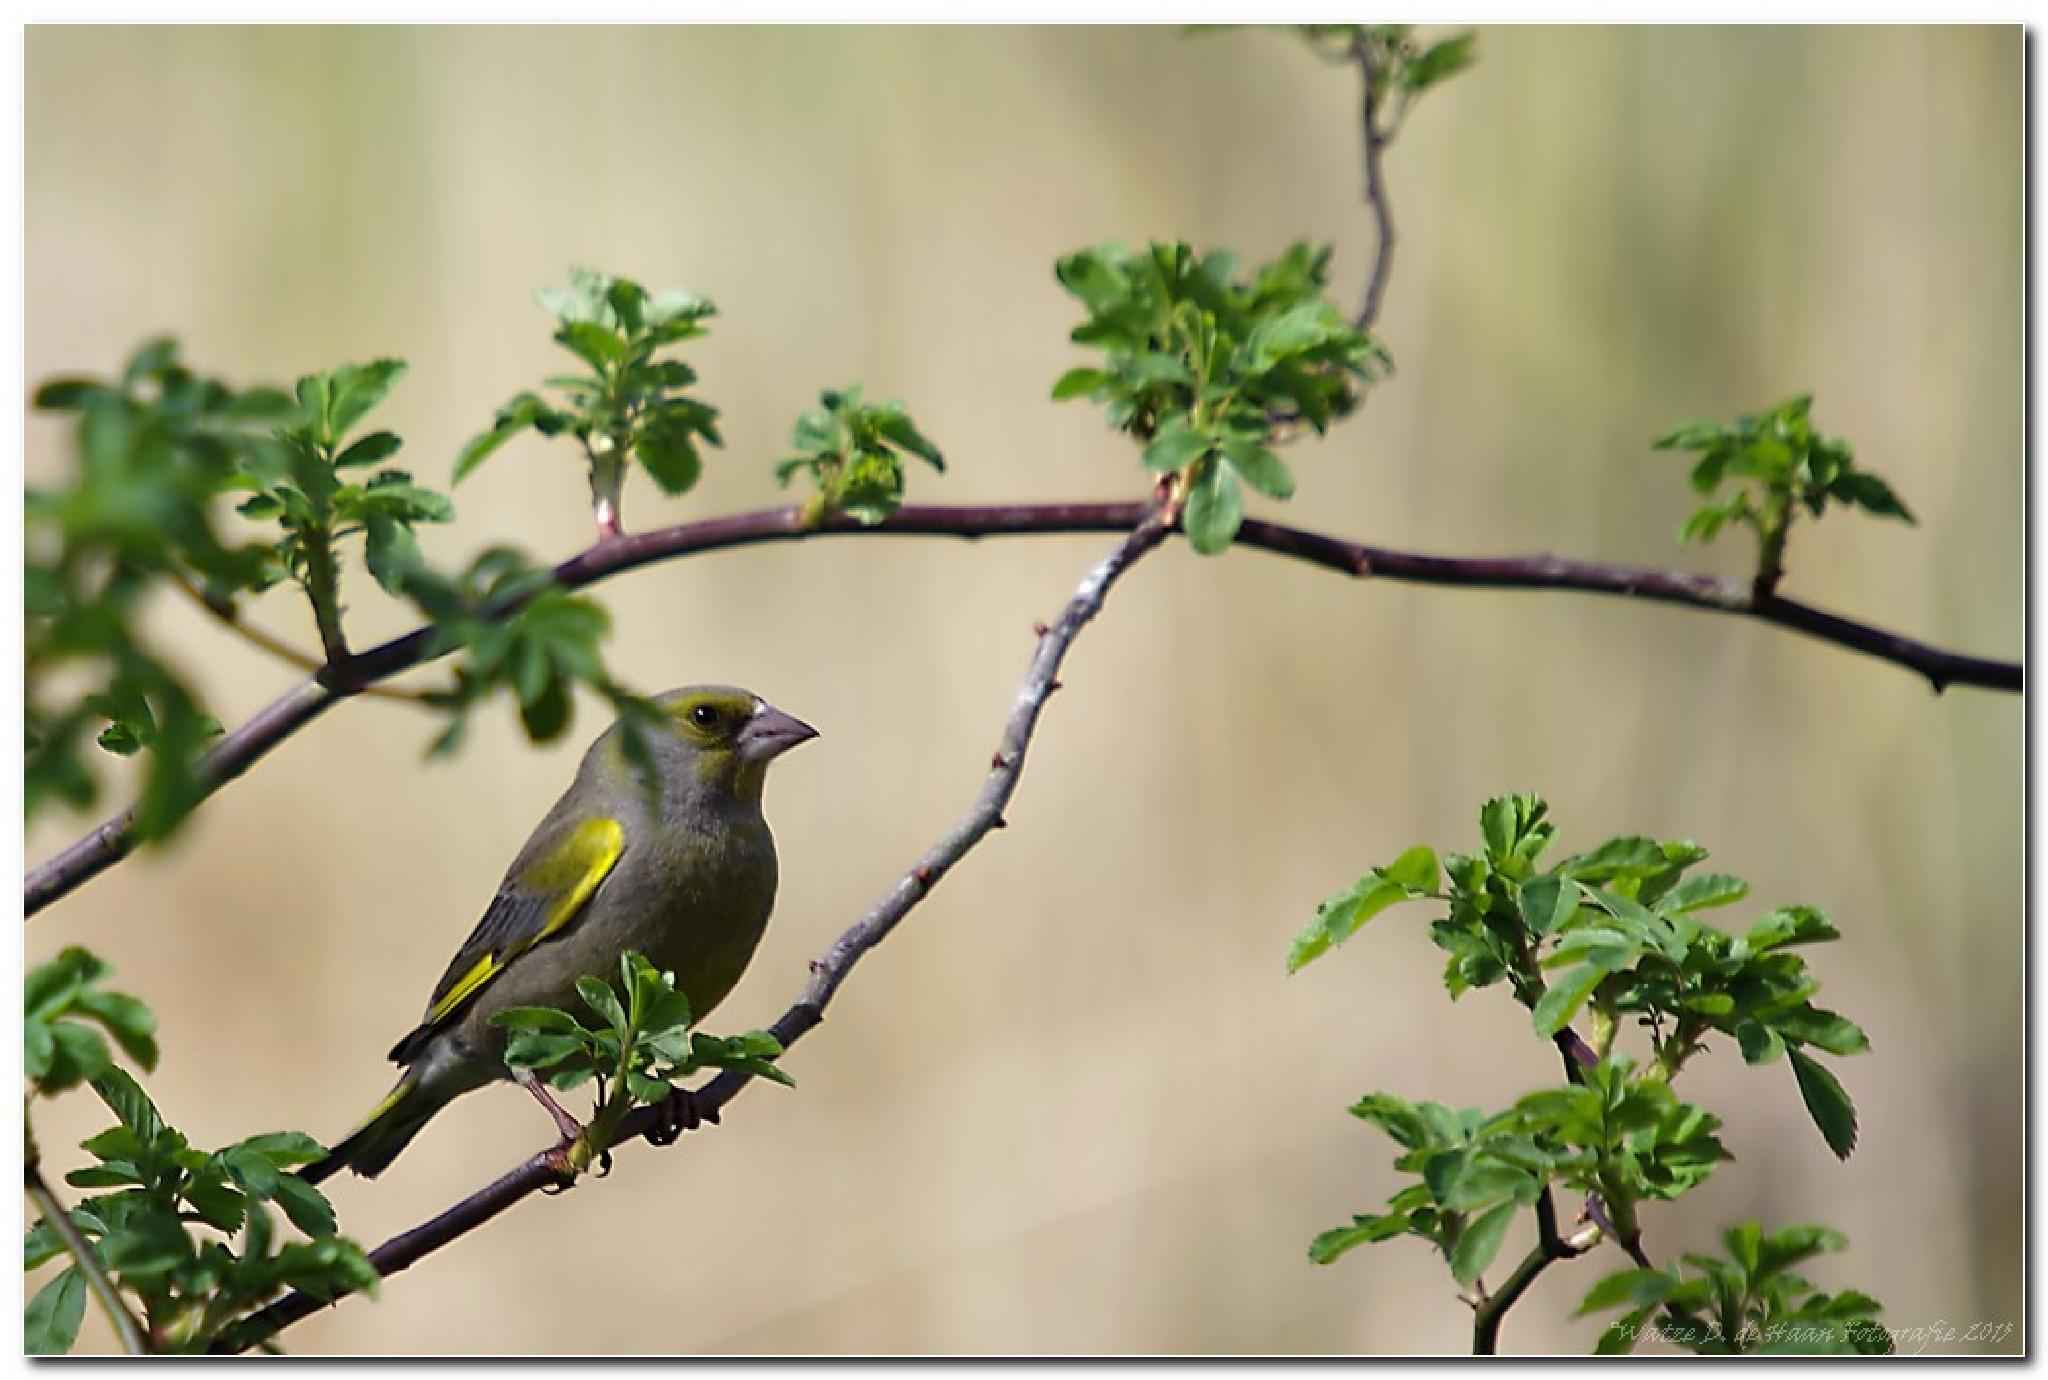 European Greenfinch by Watze D. de Haan